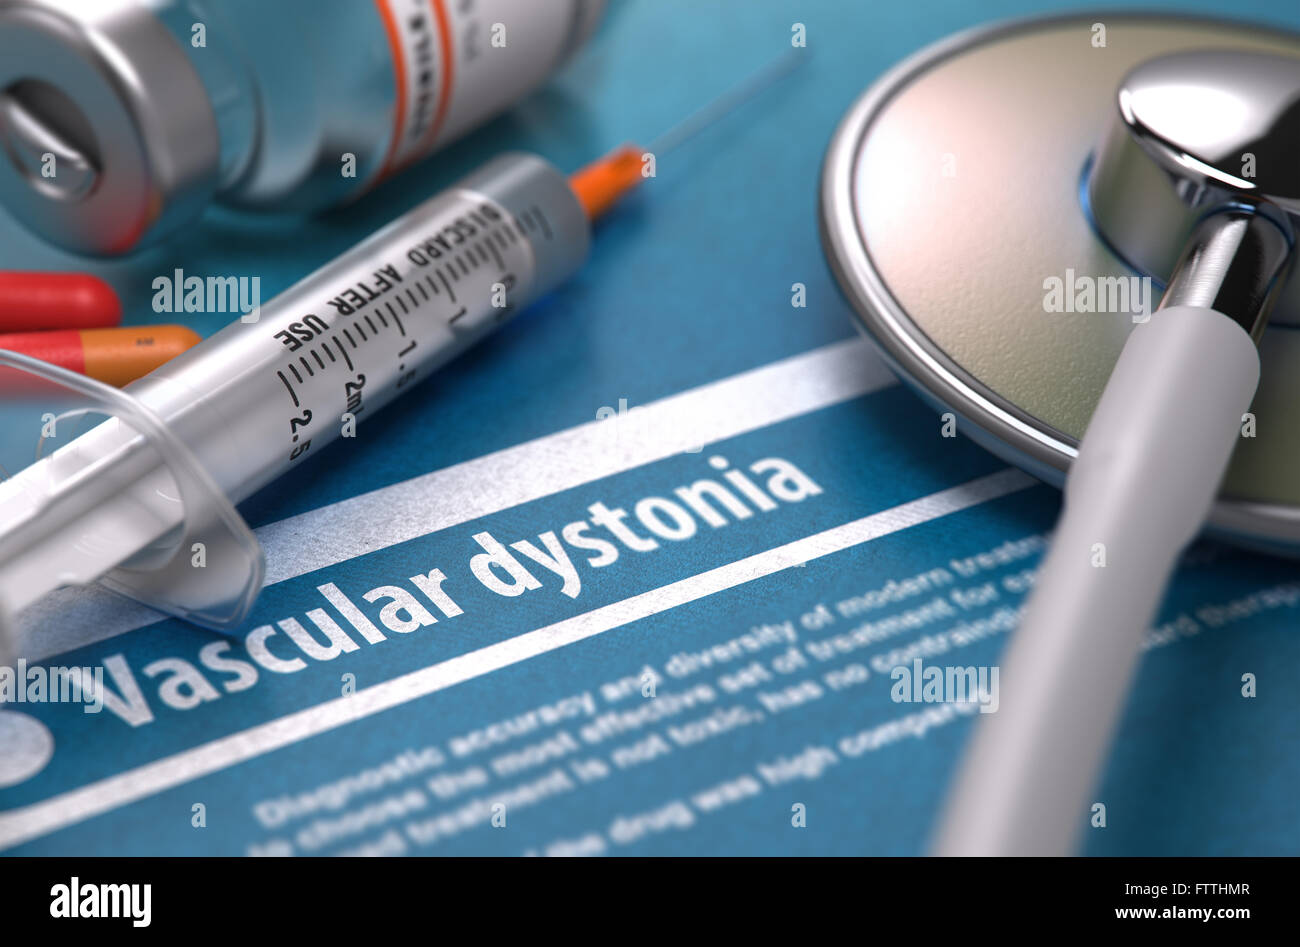 What is vascular dystonia How to treat it 99